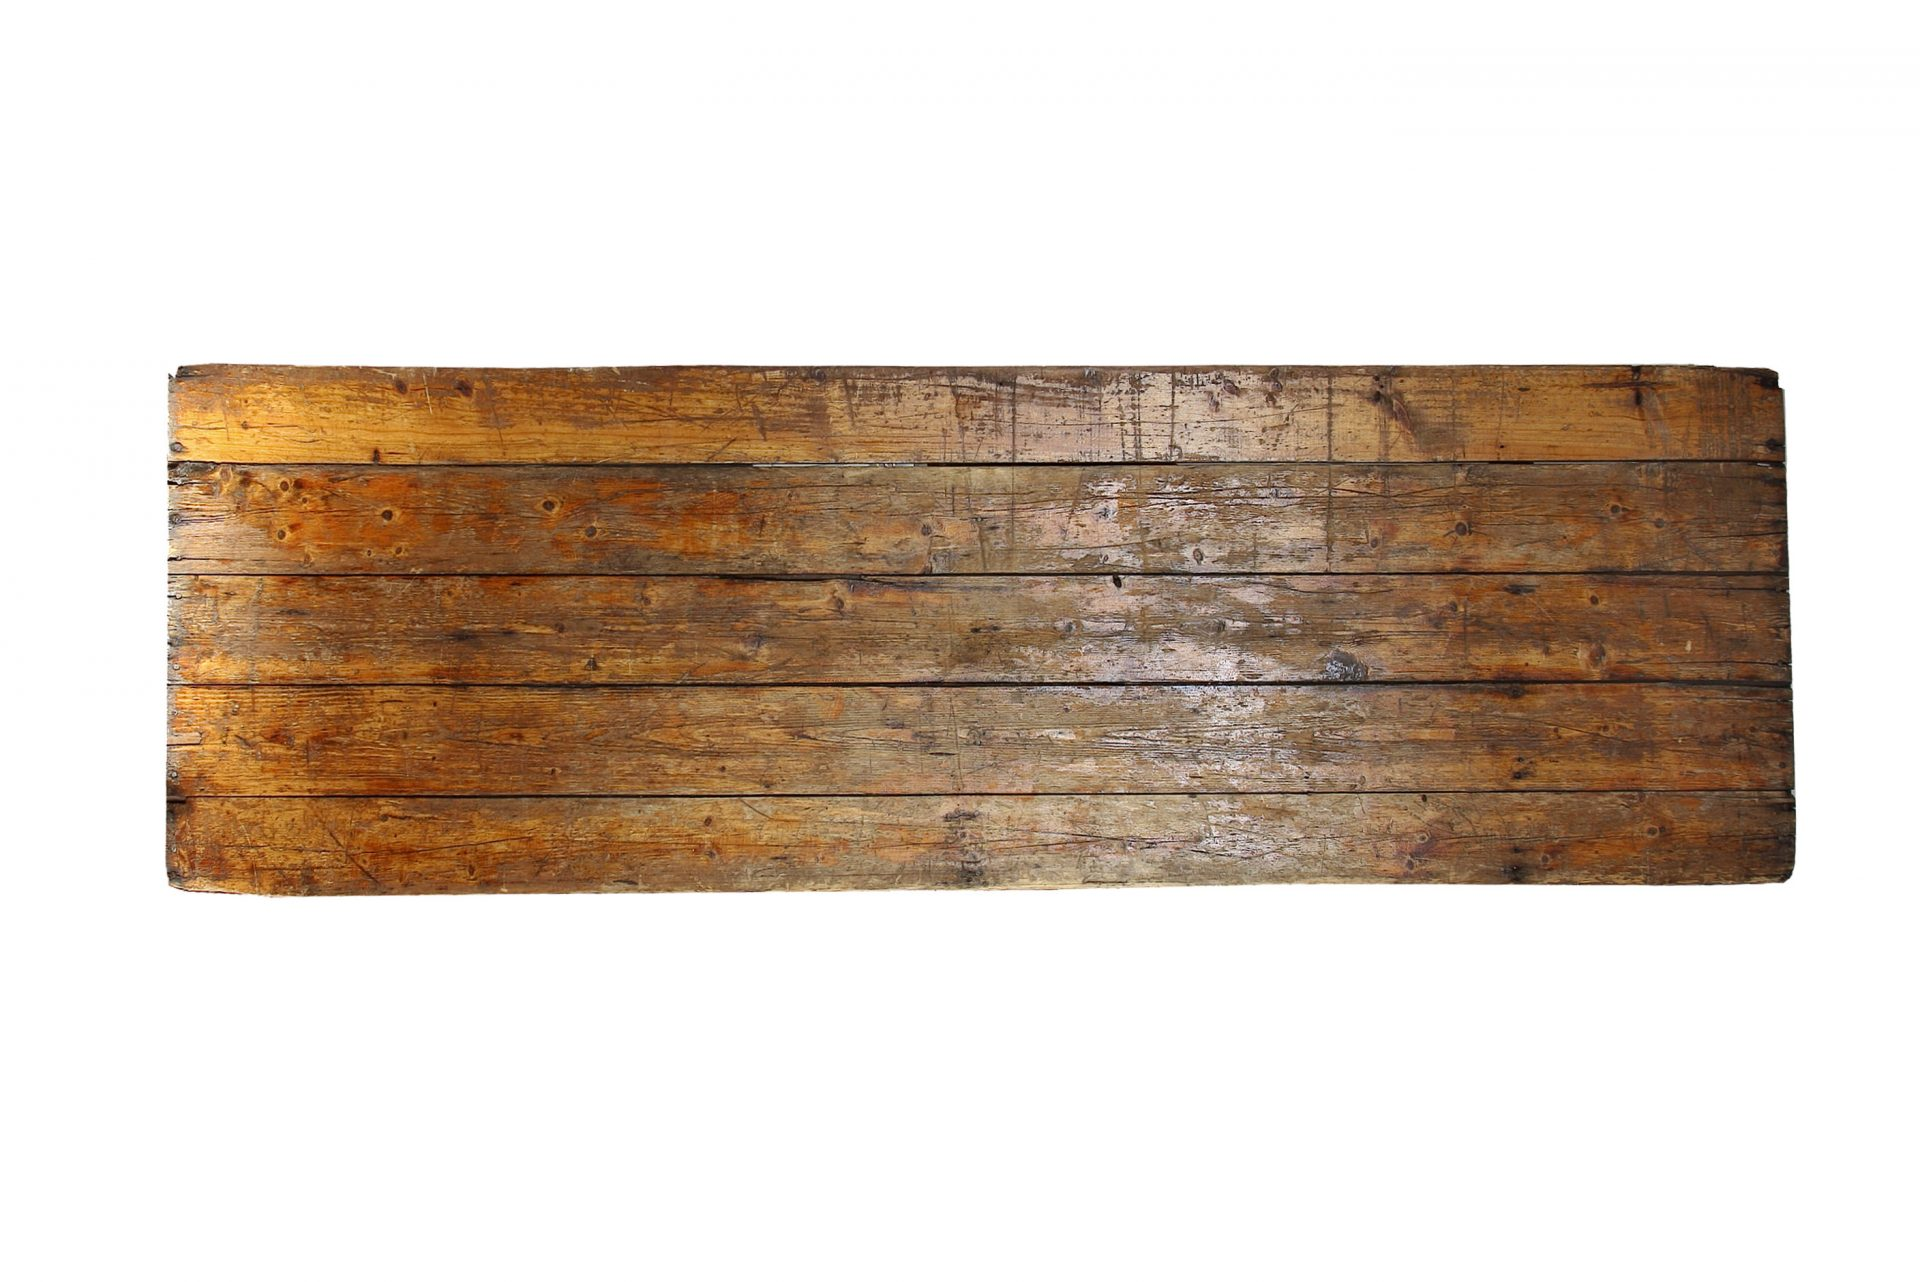 2 4 8′ rustic trestle table top